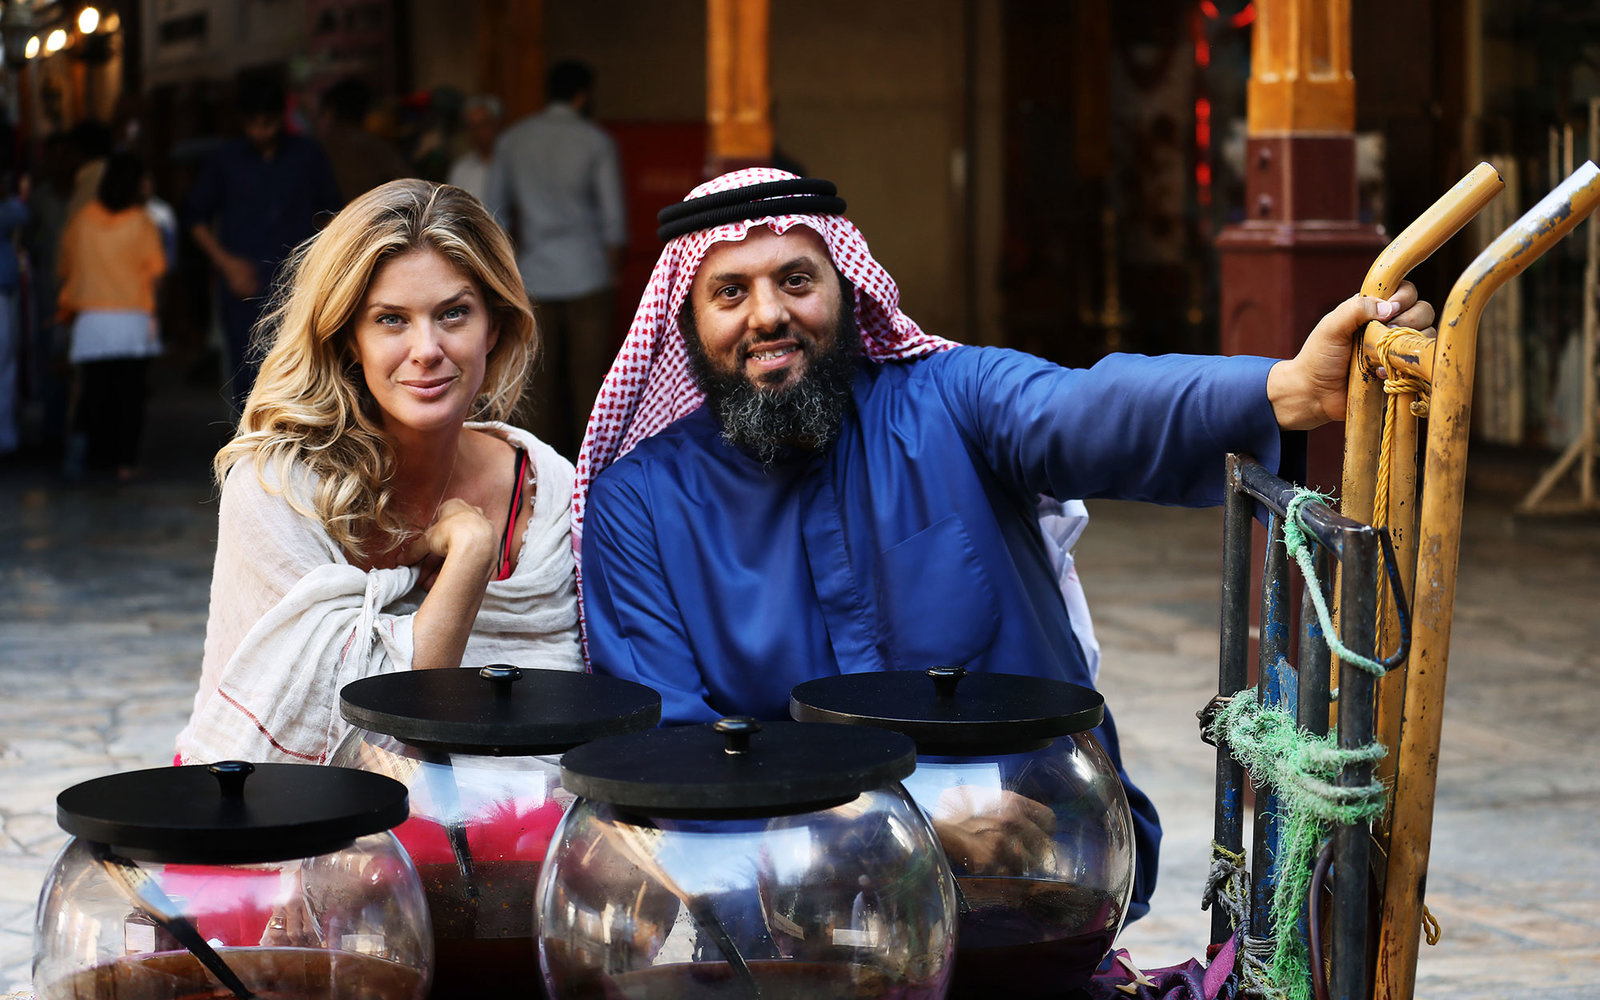 rachel hunter's tour of beauty in dubai